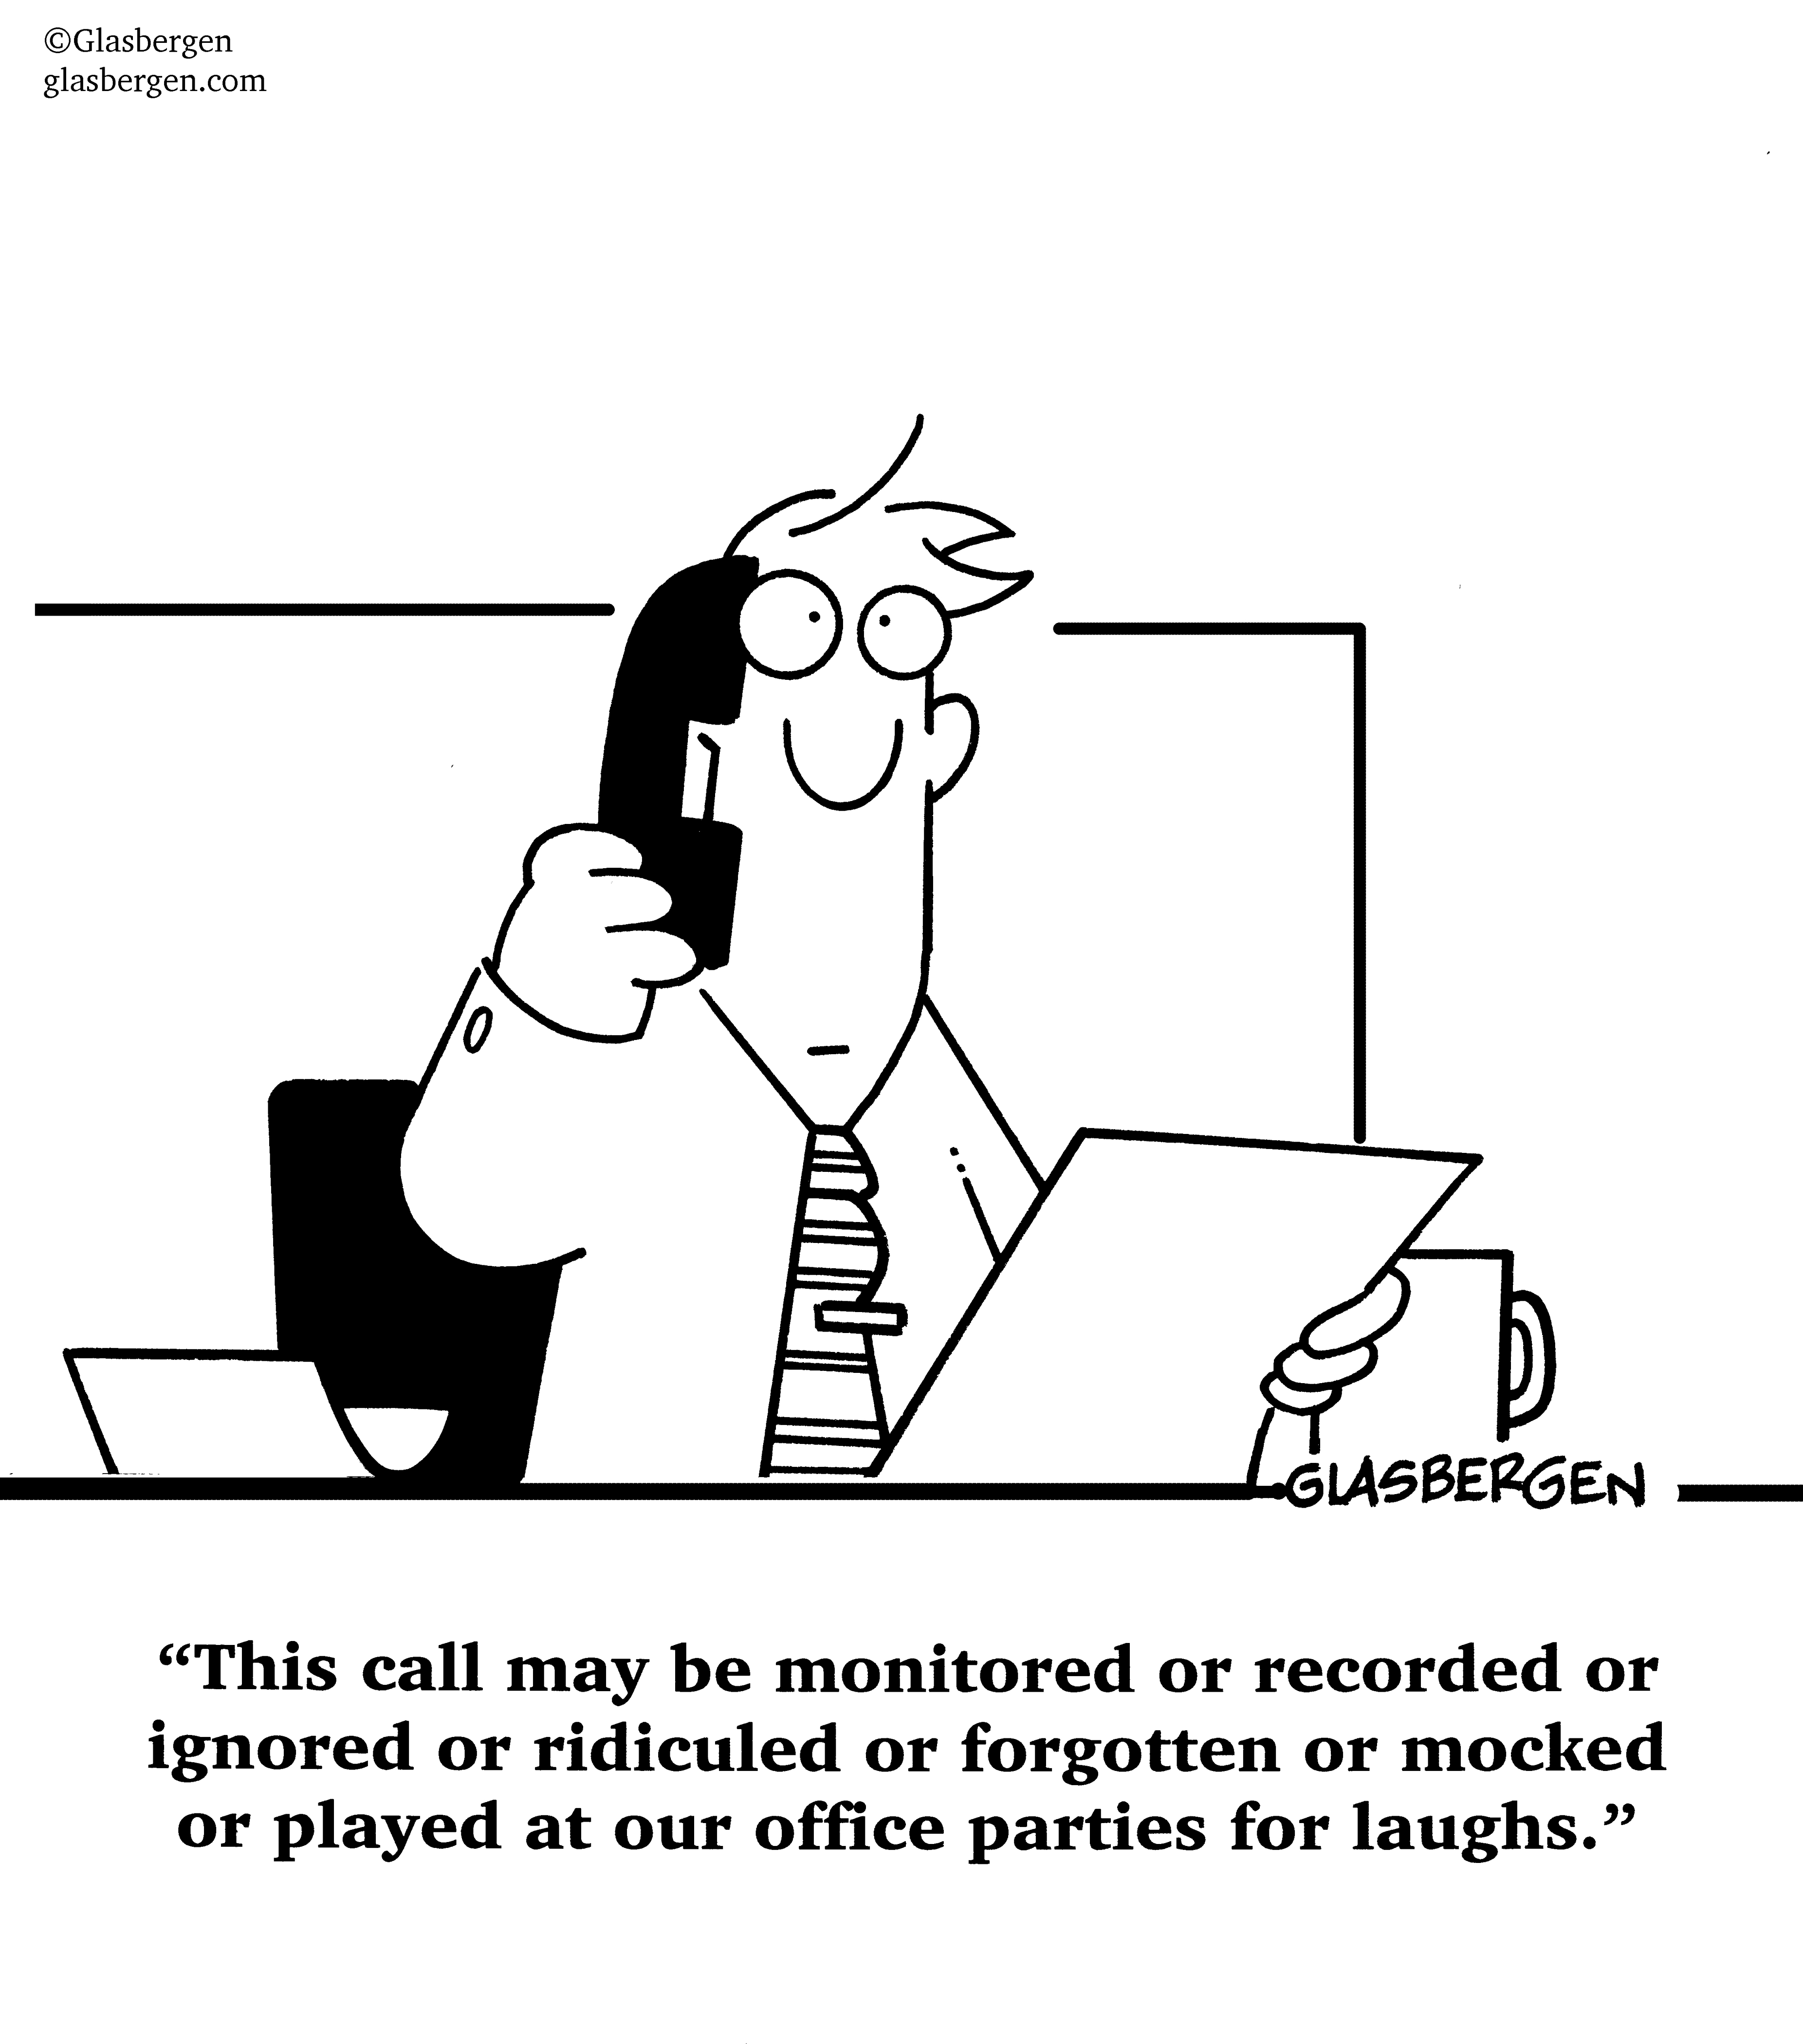 """This call may be monitored or recored or ignored or ridiculed or forgotten or mocked or played at our office parties for laughs."" - Glasbergen cartoon"